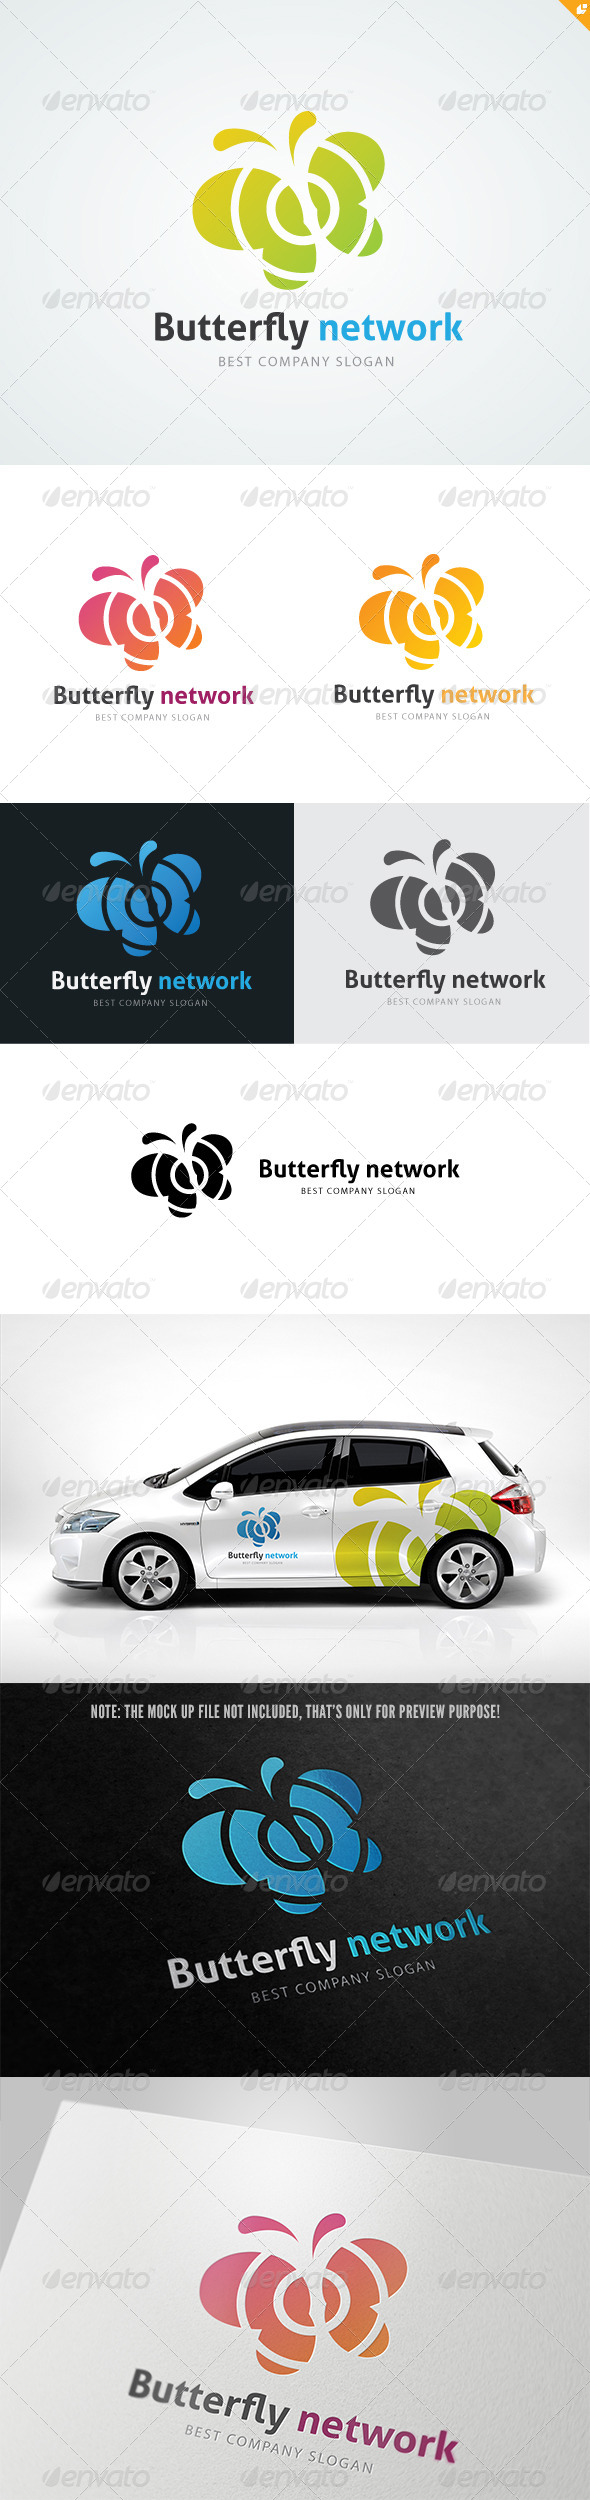 GraphicRiver Butterfly Network Logo 4806568